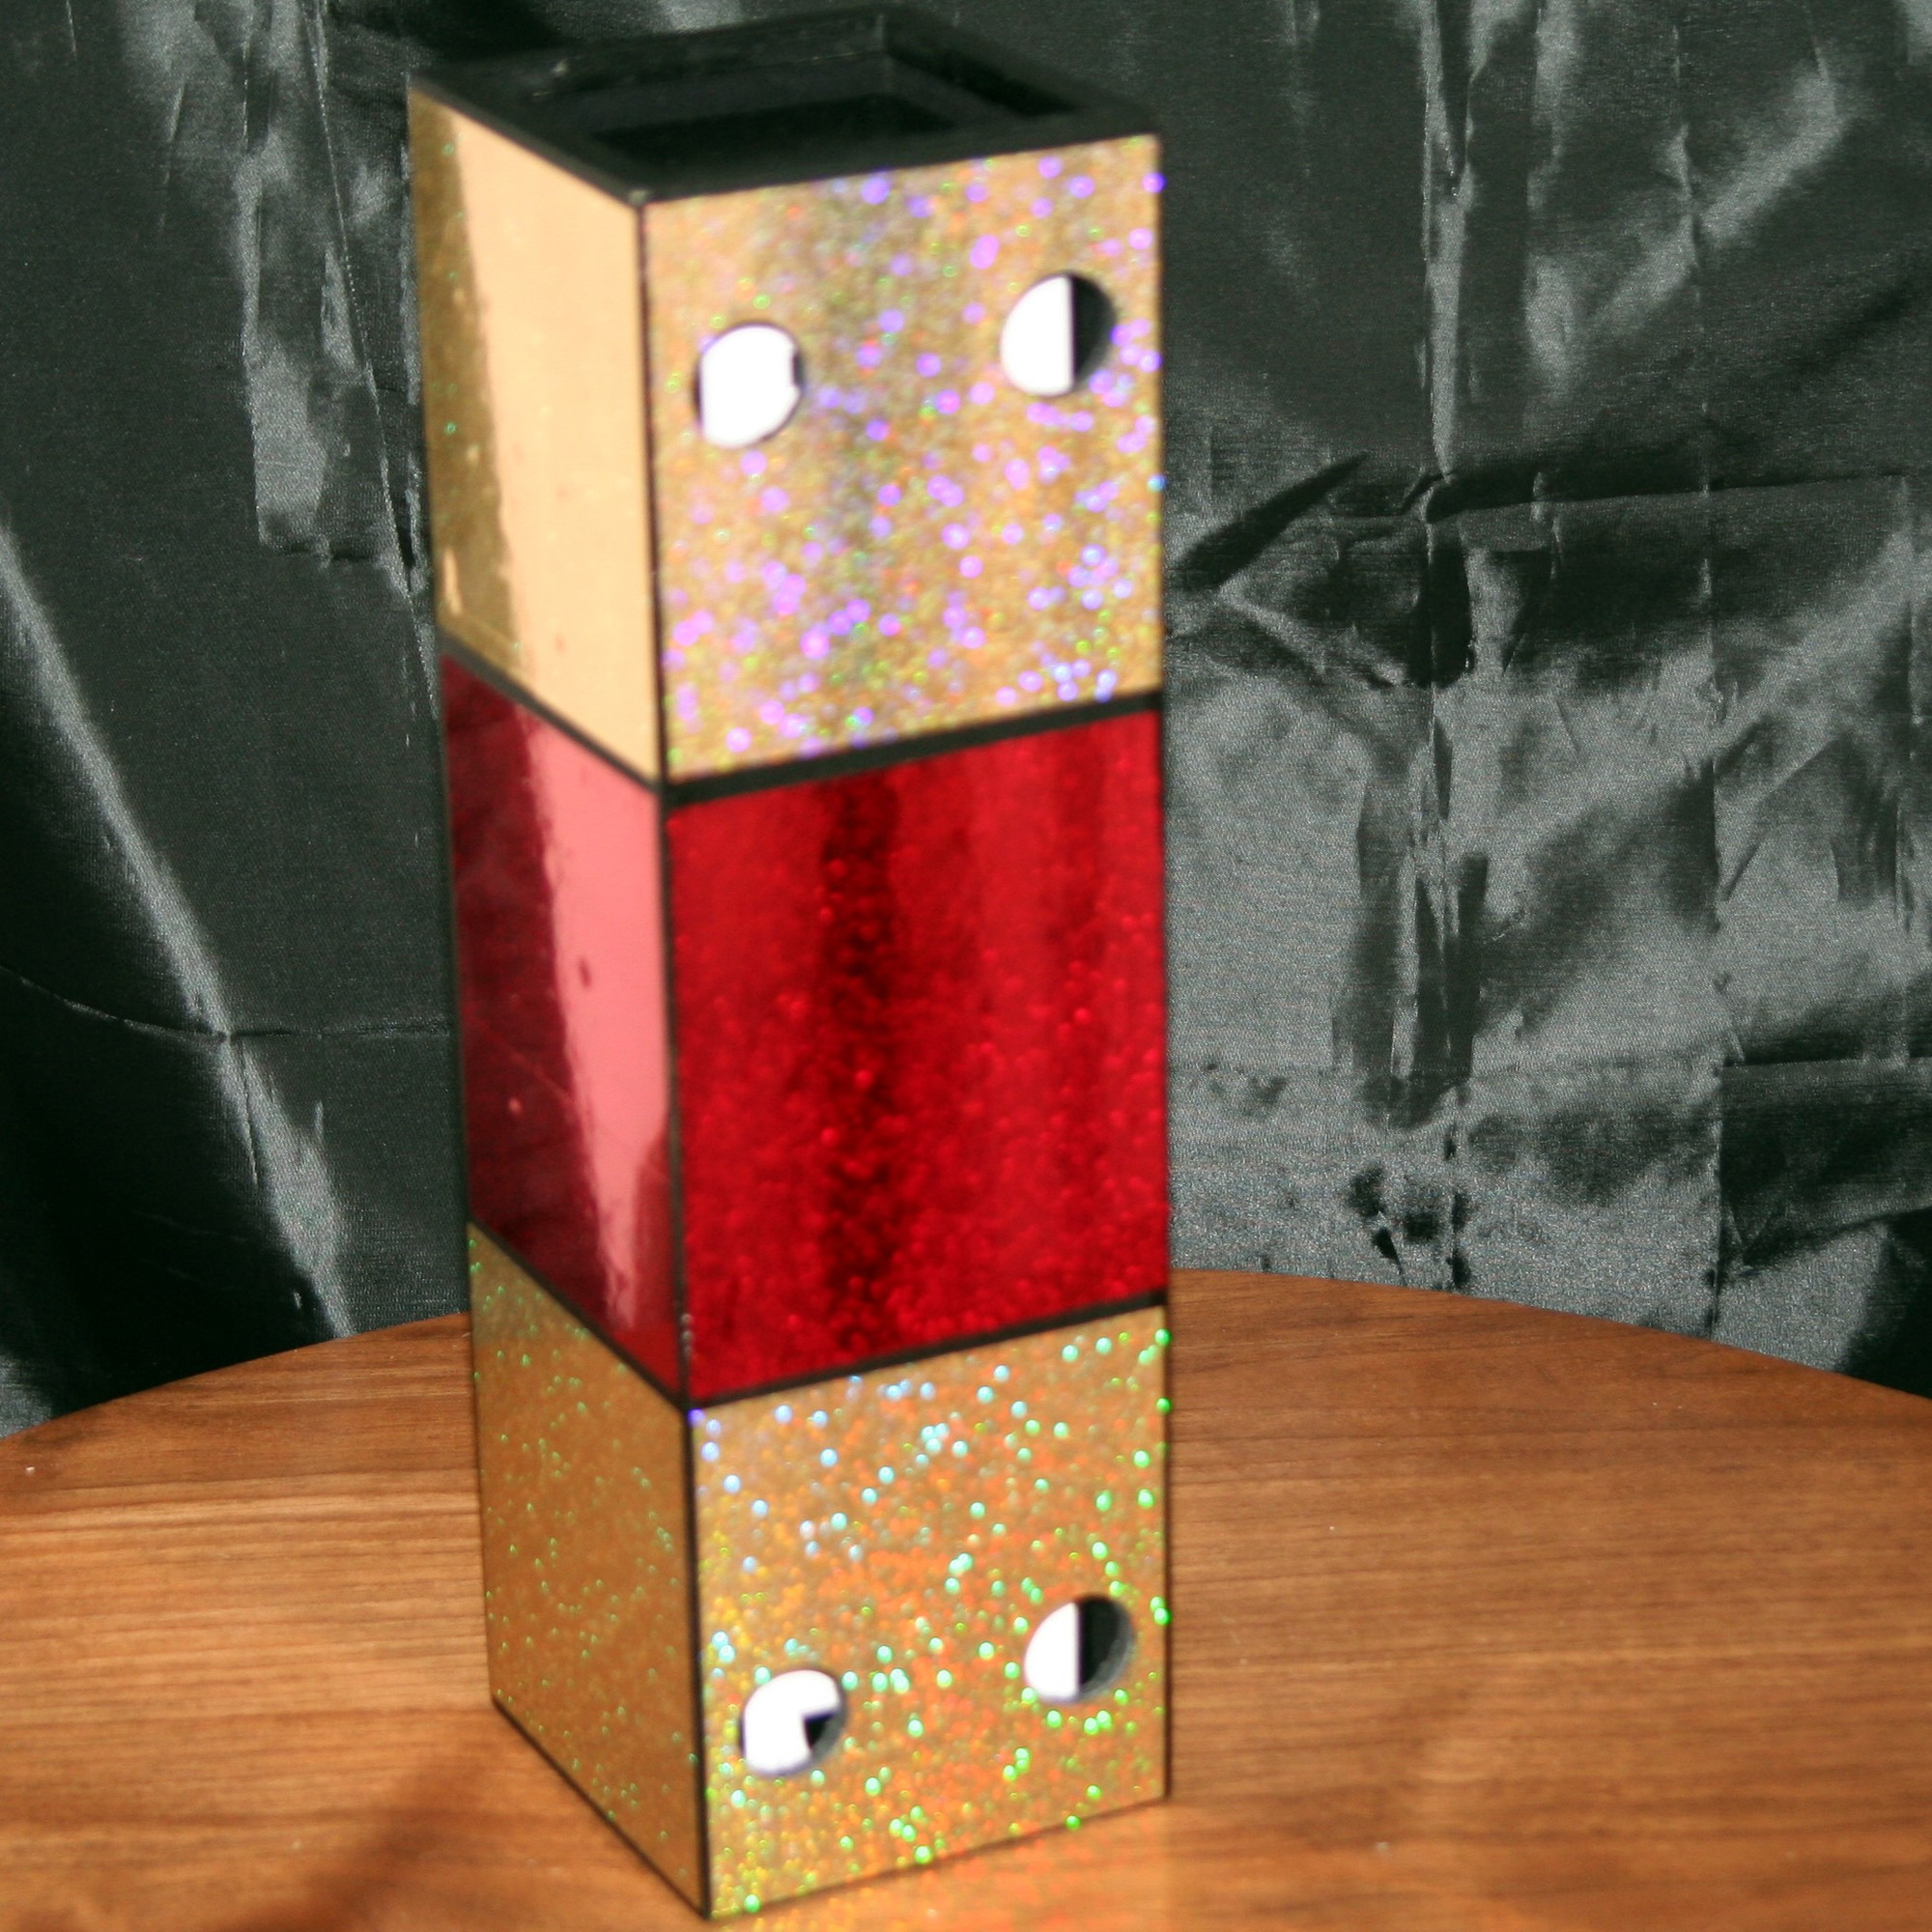 Crazy Cubes (Red) by Harries